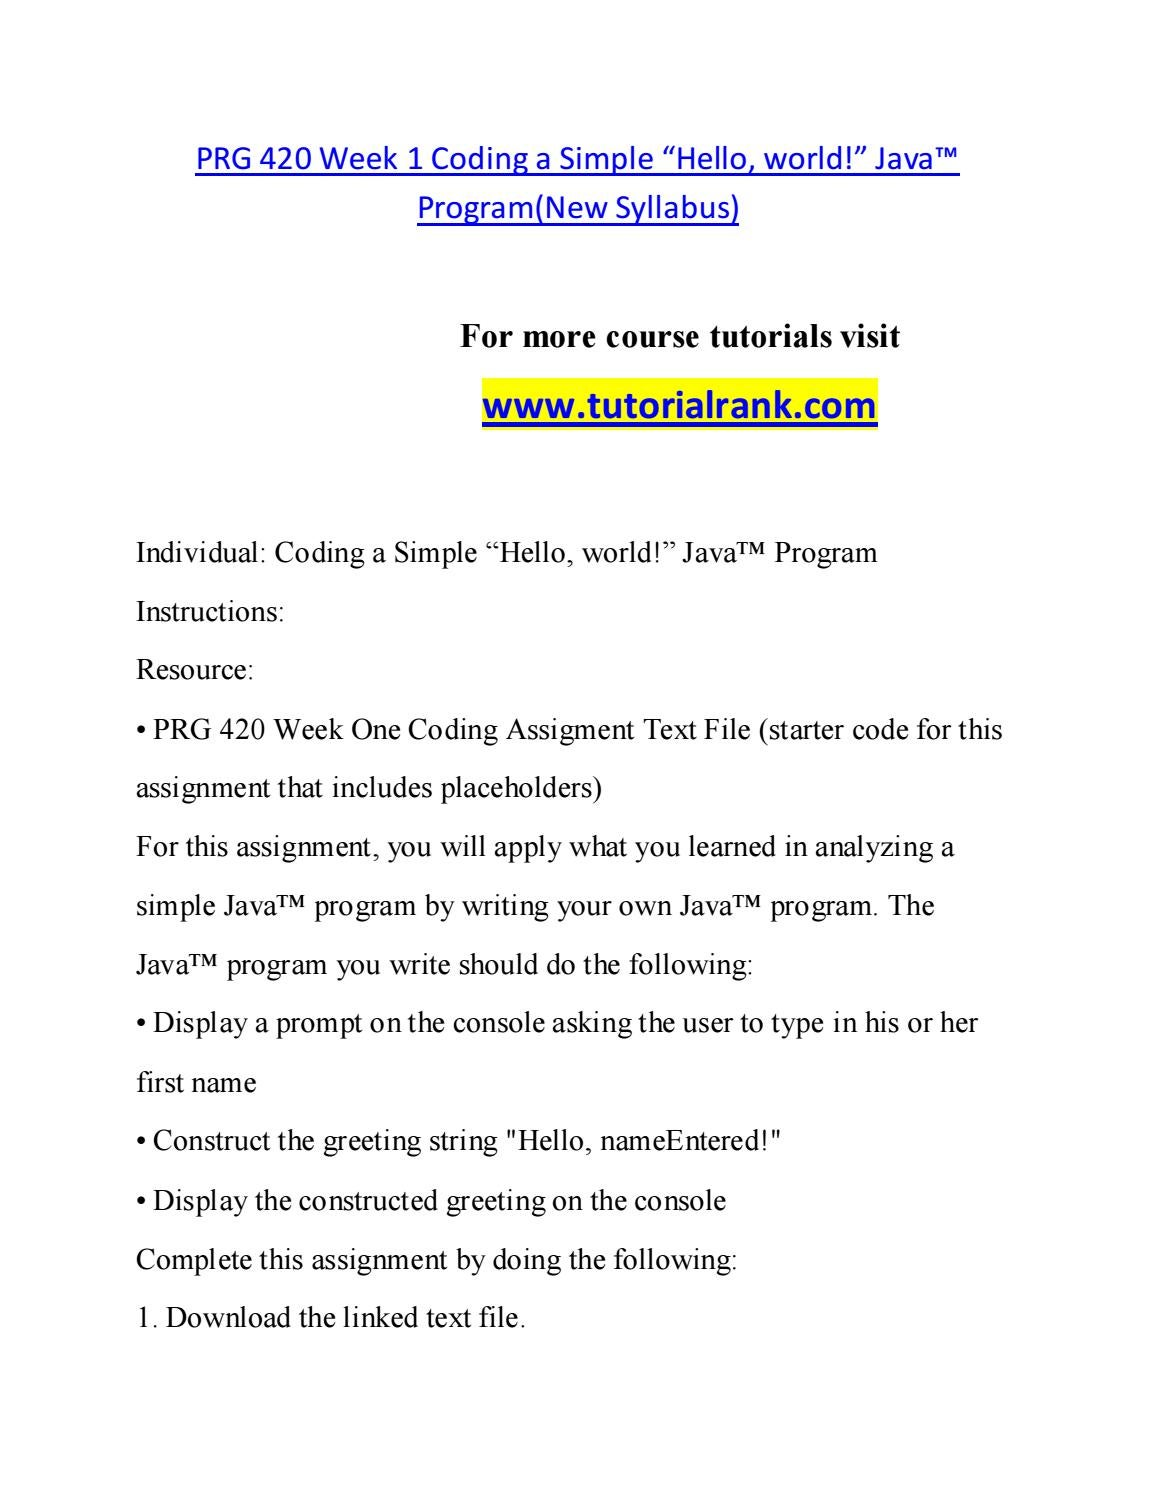 PRG 420 Teaching Effectively--tutorialrank com by s